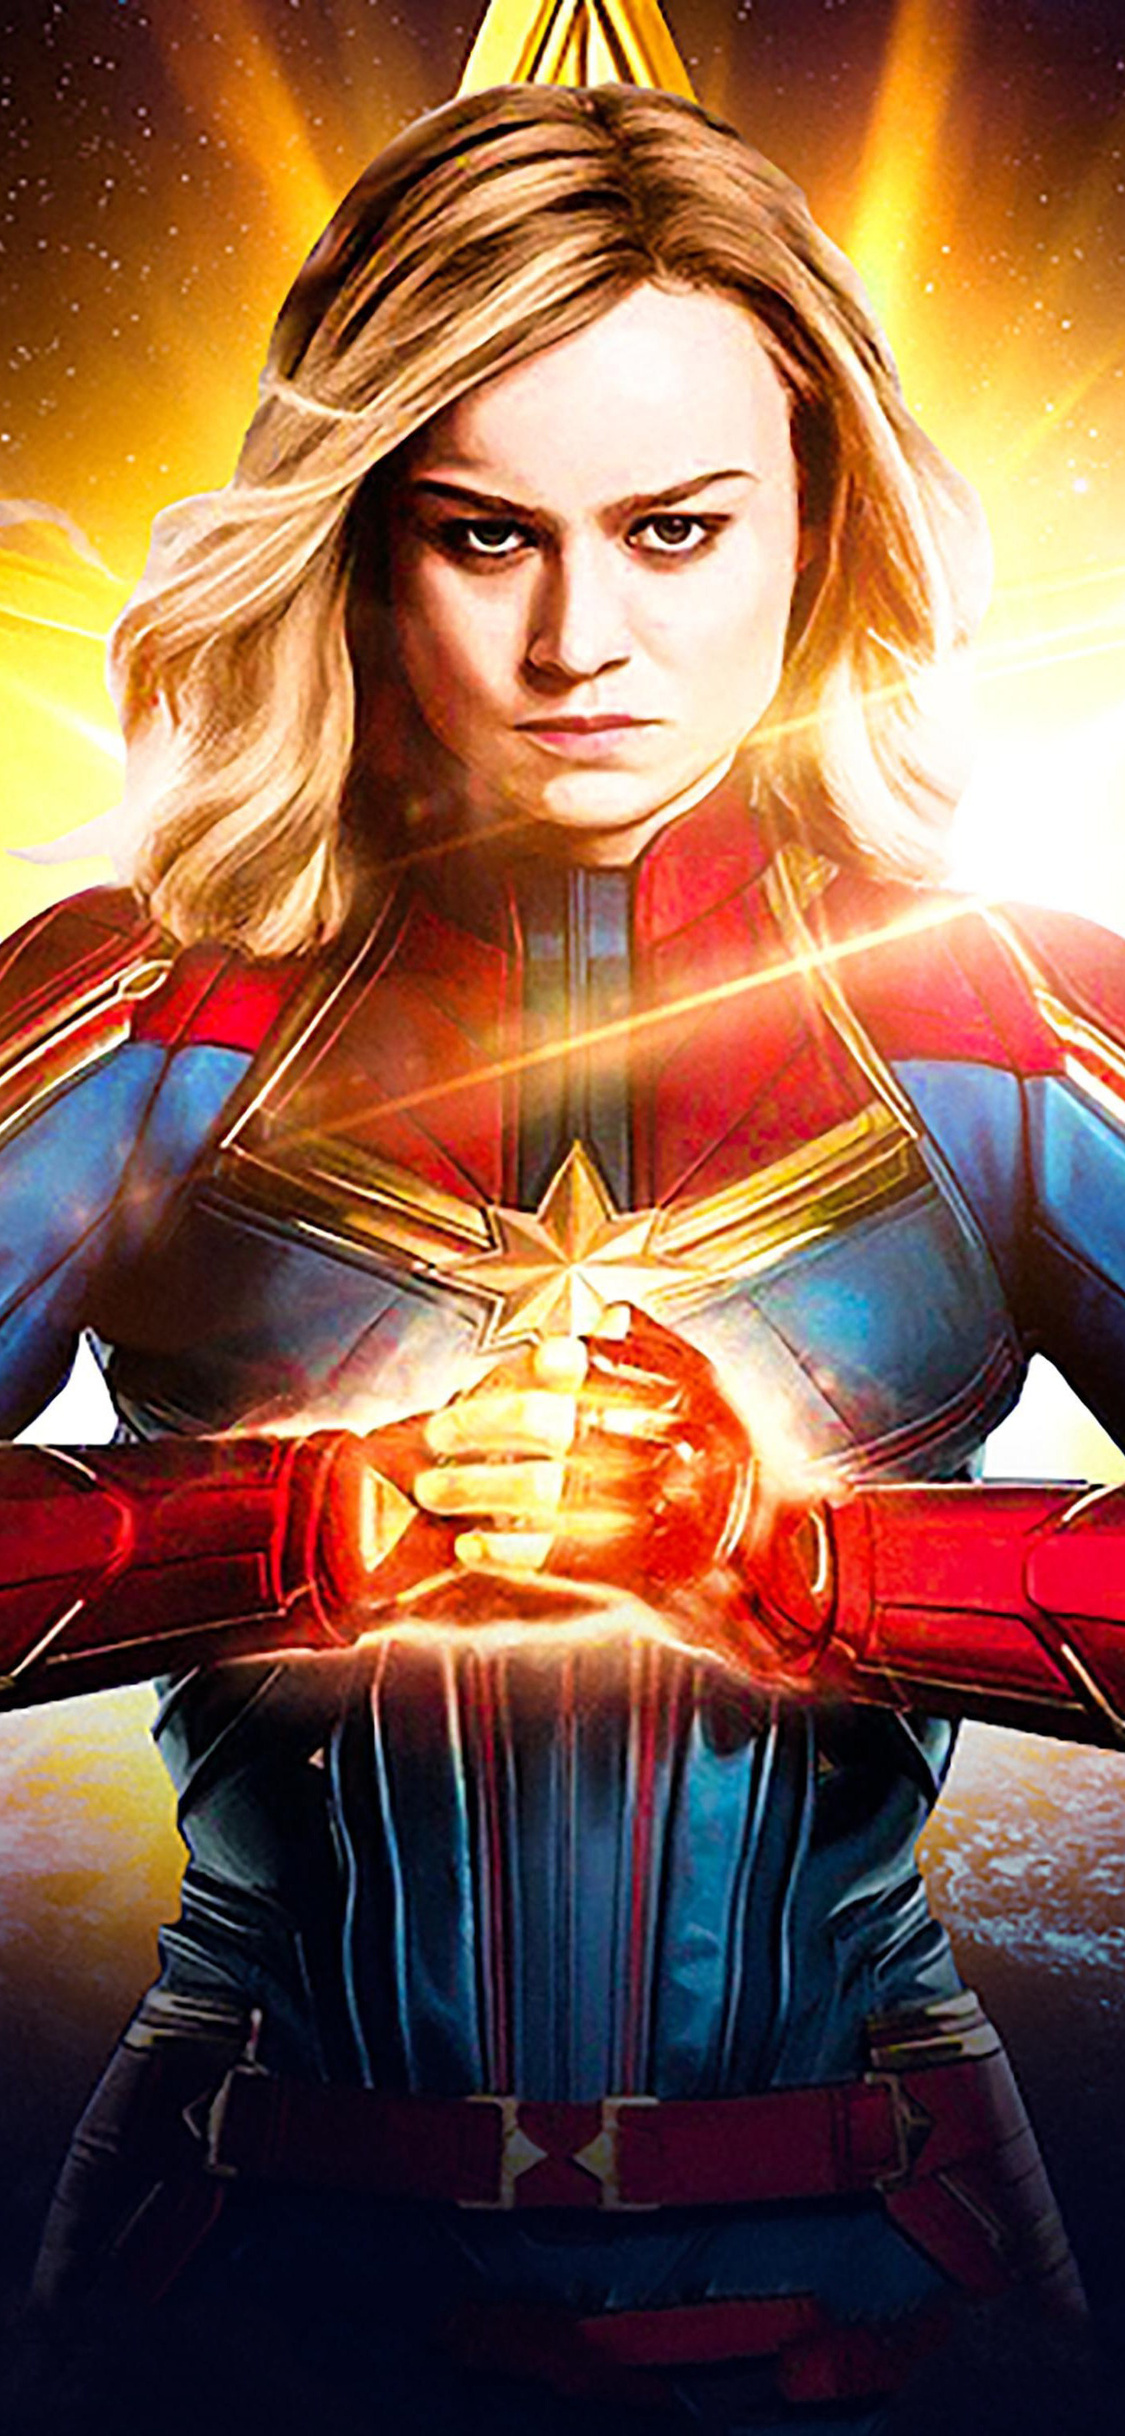 1125x2436 2019 Captain Marvel Iphone Xs Iphone 10 Iphone X Hd 4k Wallpapers Images Backgrounds Photos And Pictures